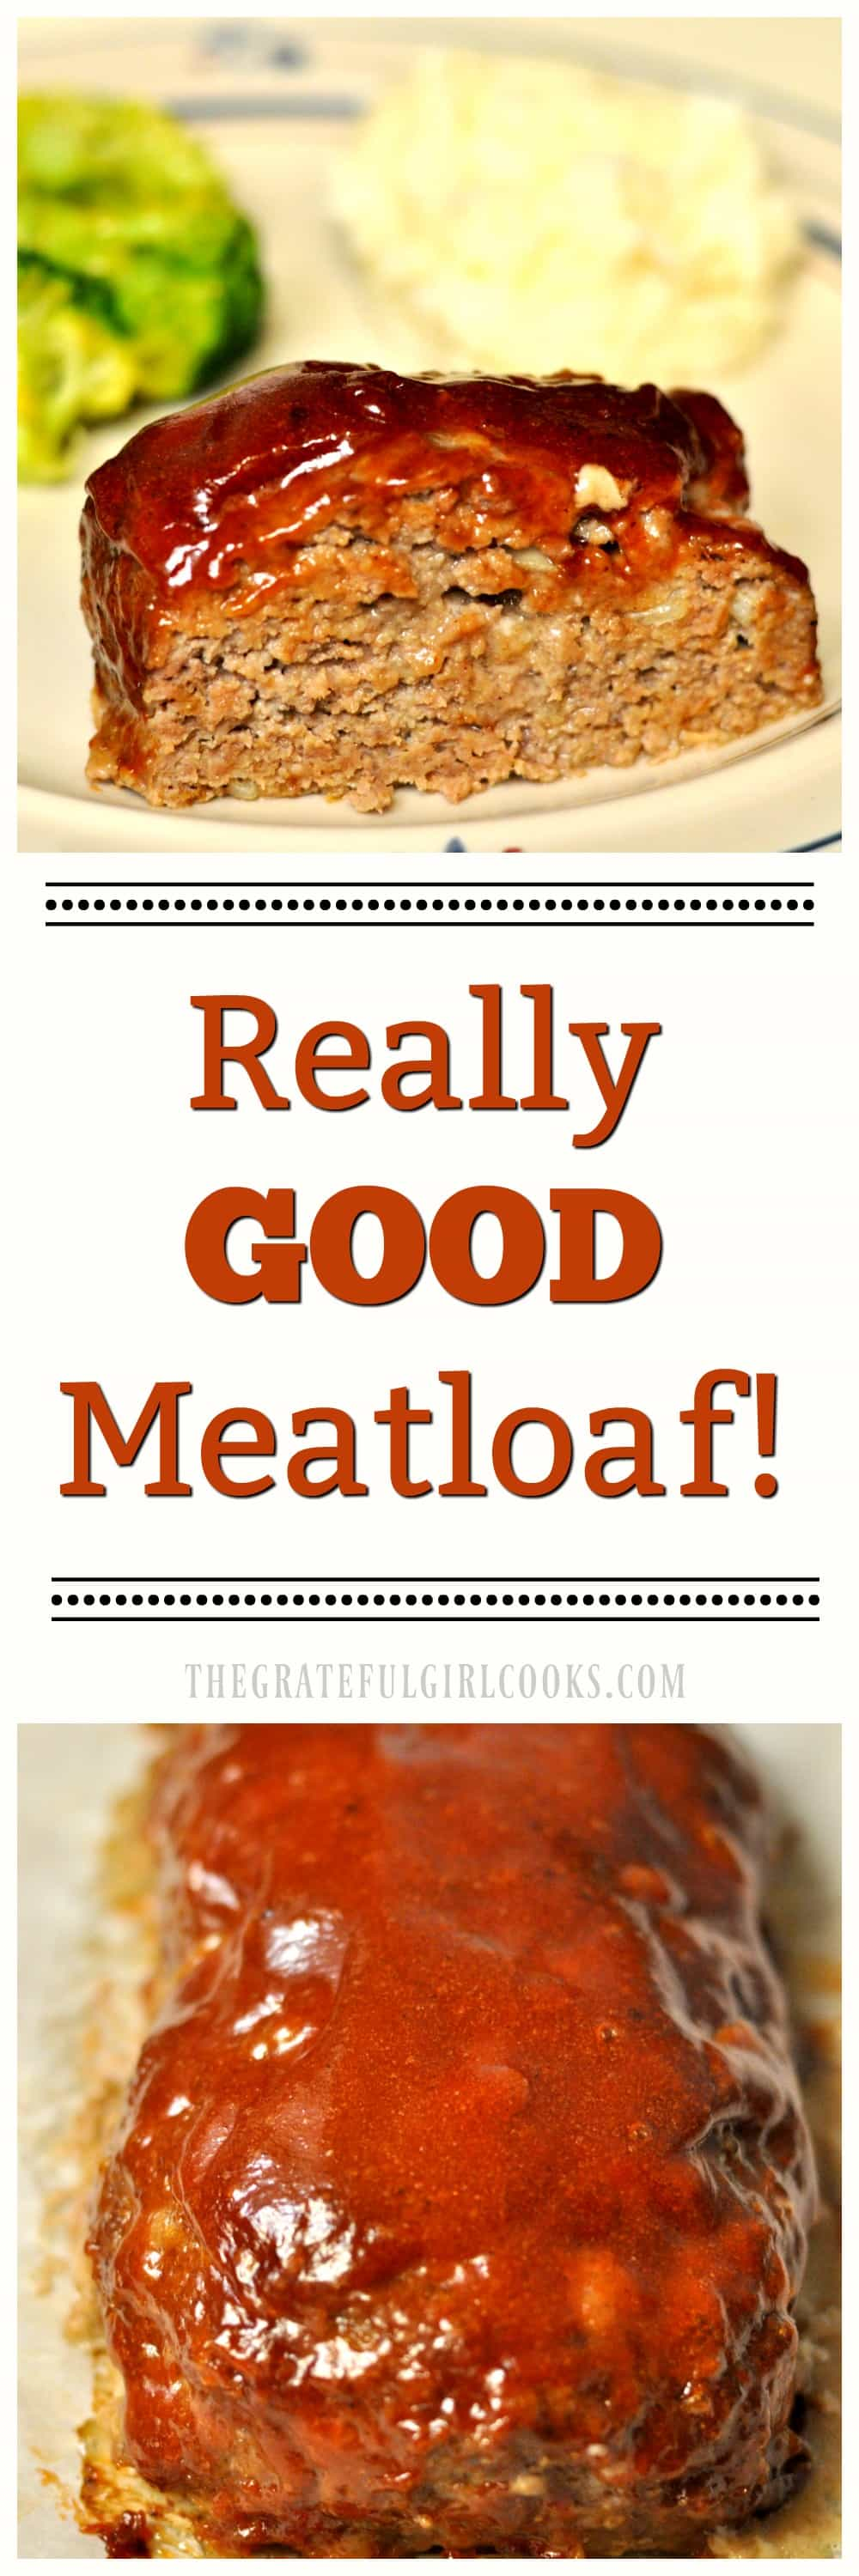 Really GOOD Meatloaf! / The Grateful Girl Cooks!